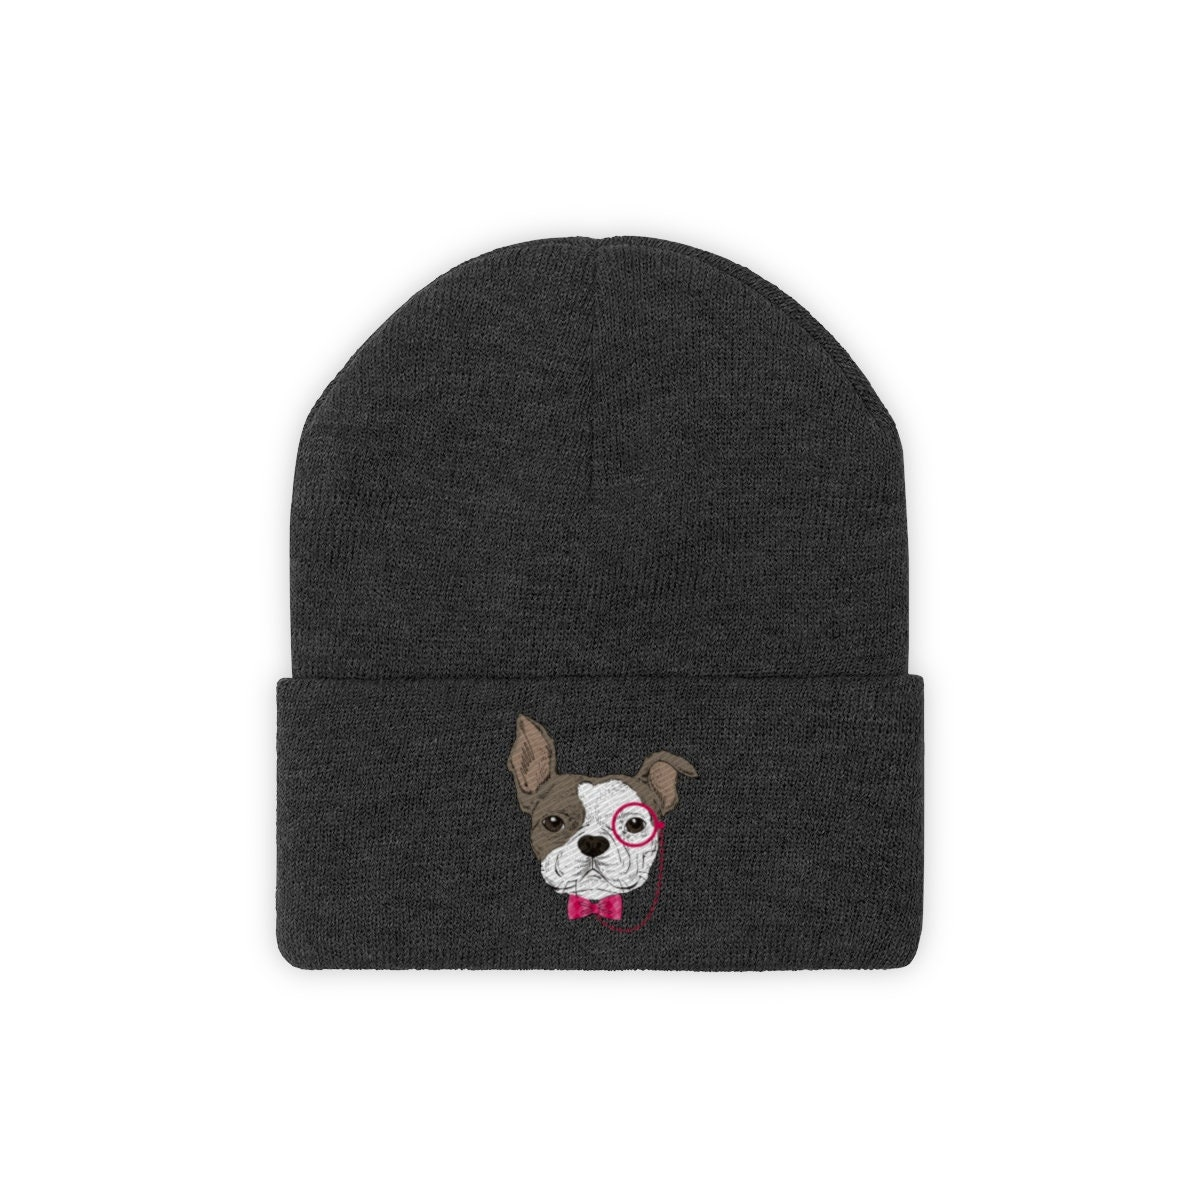 Pug Beanie Hat Embroidered Beanie Cuffed Cap Dog Mom Dog Dad  fd6666e4b2f